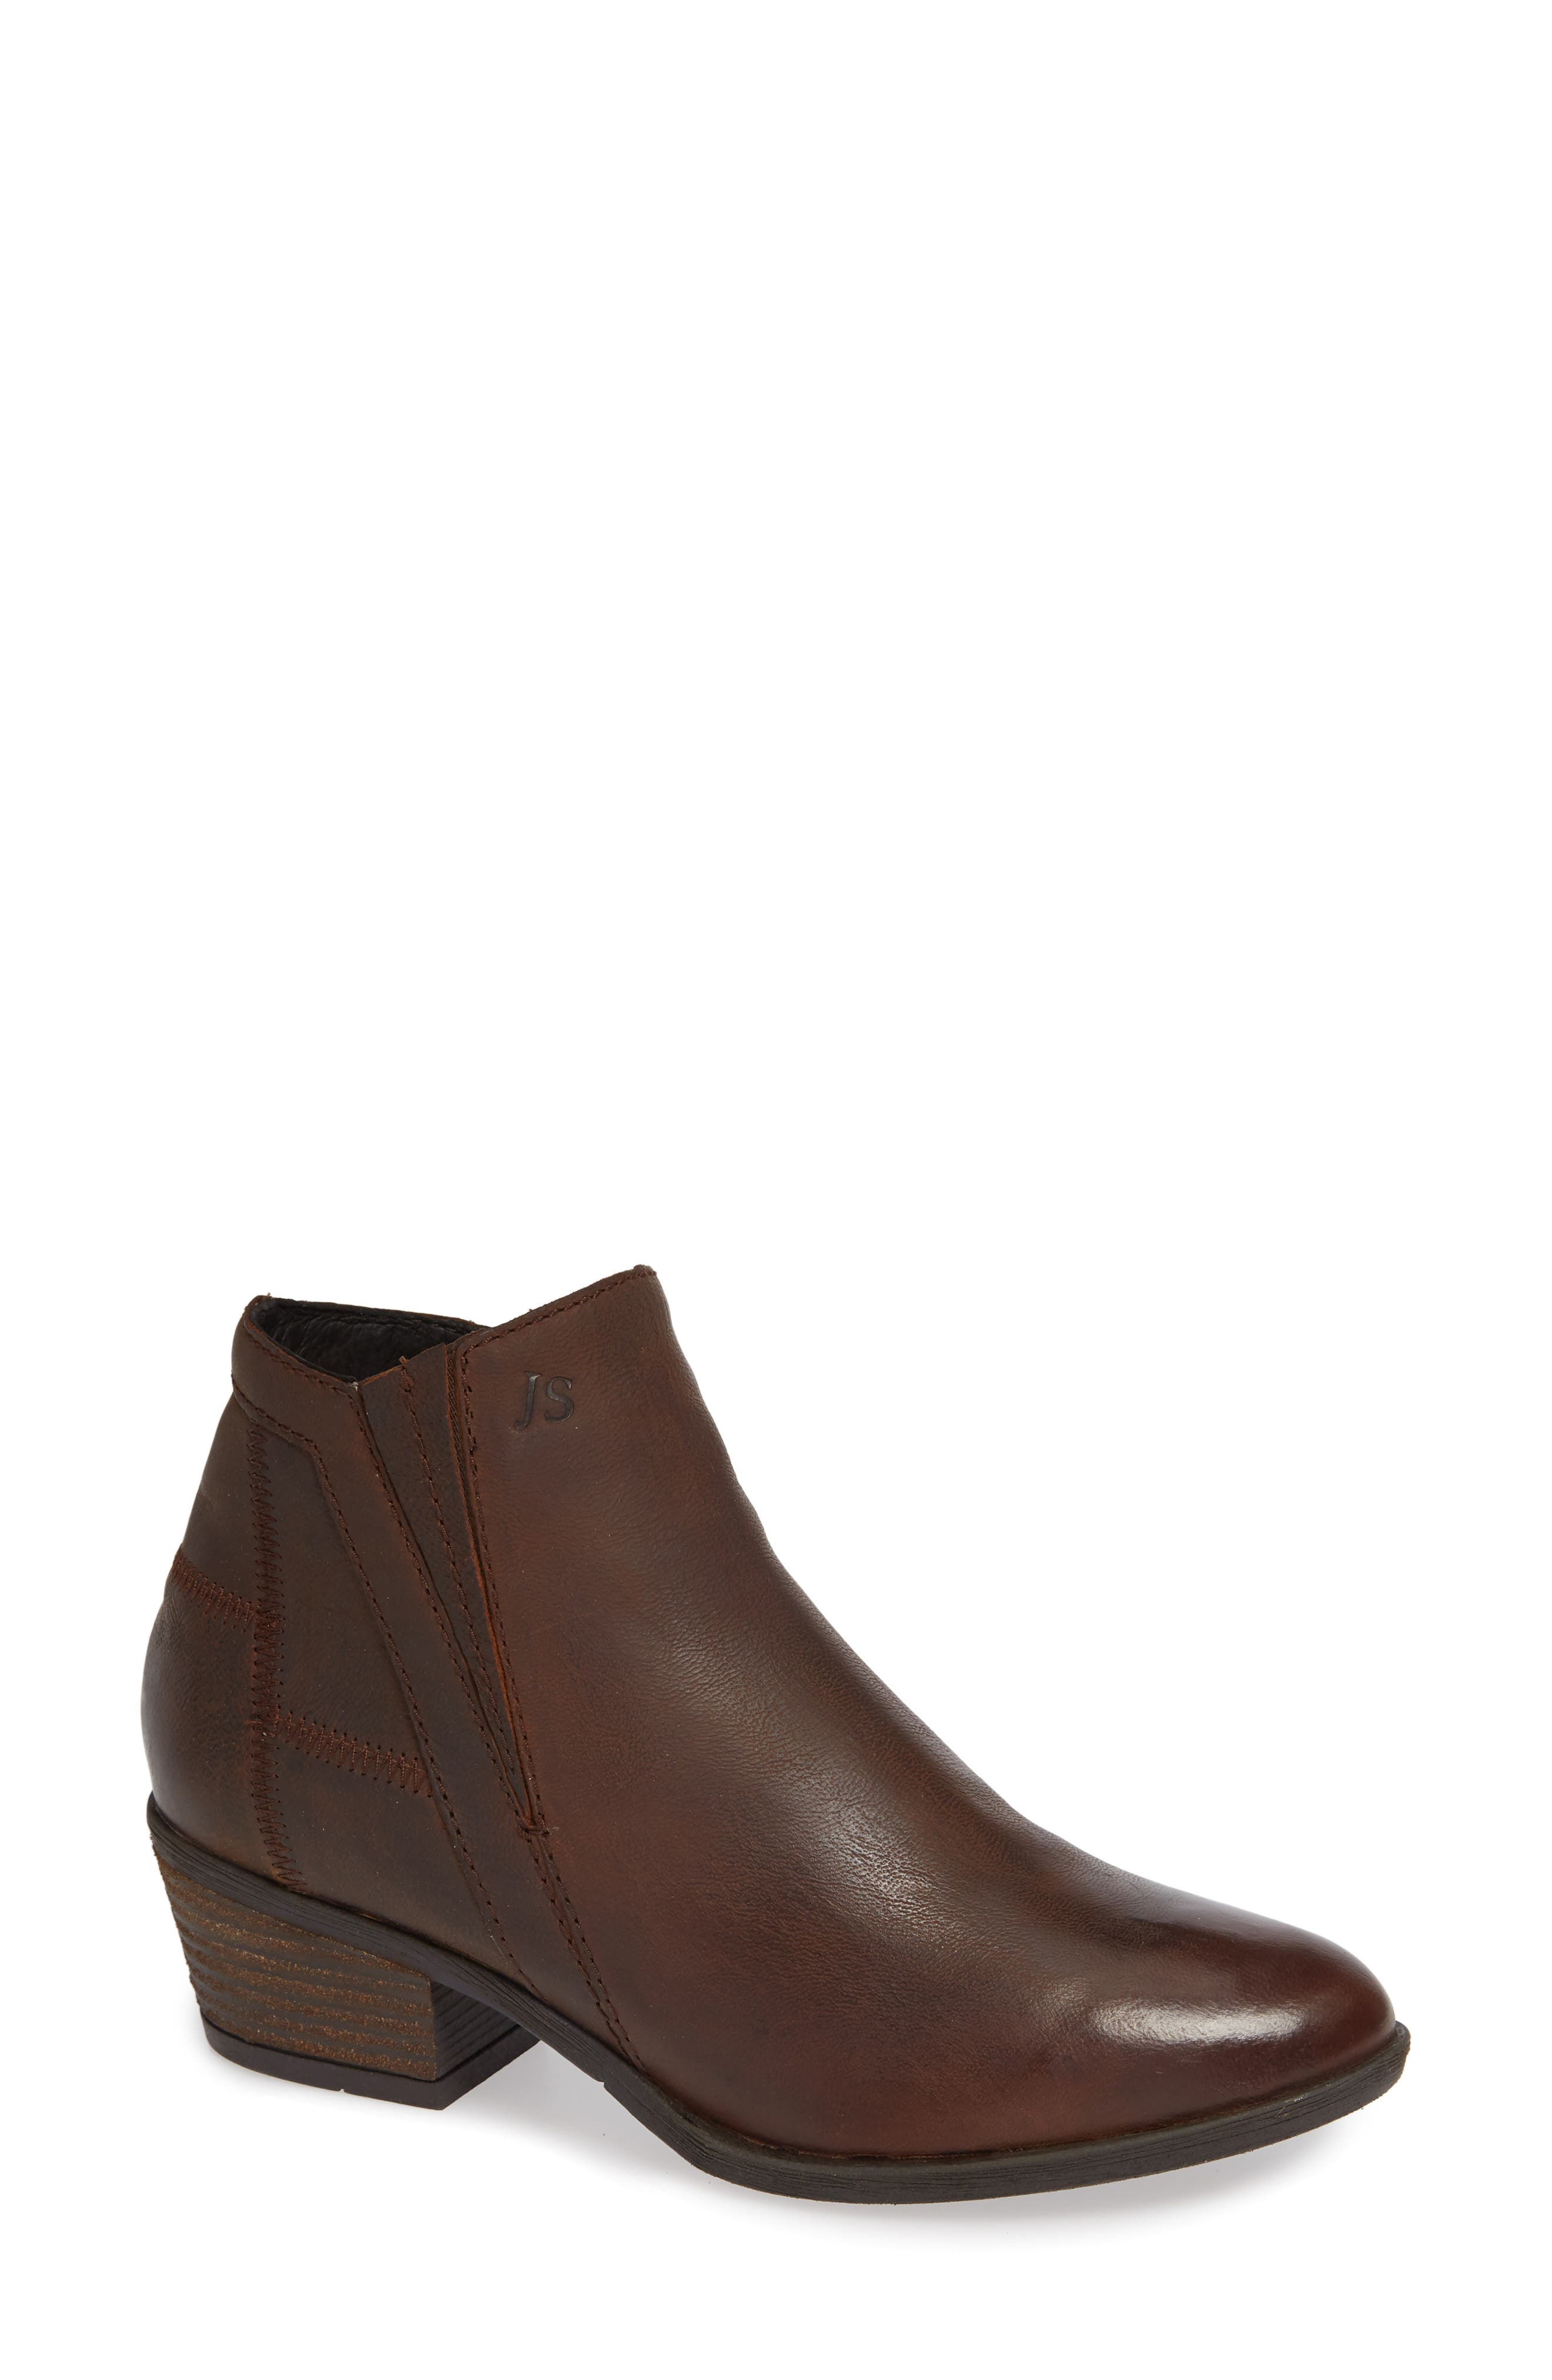 JOSEF SEIBEL Daphne Bootie, Main, color, MORO WASHED LEATHER